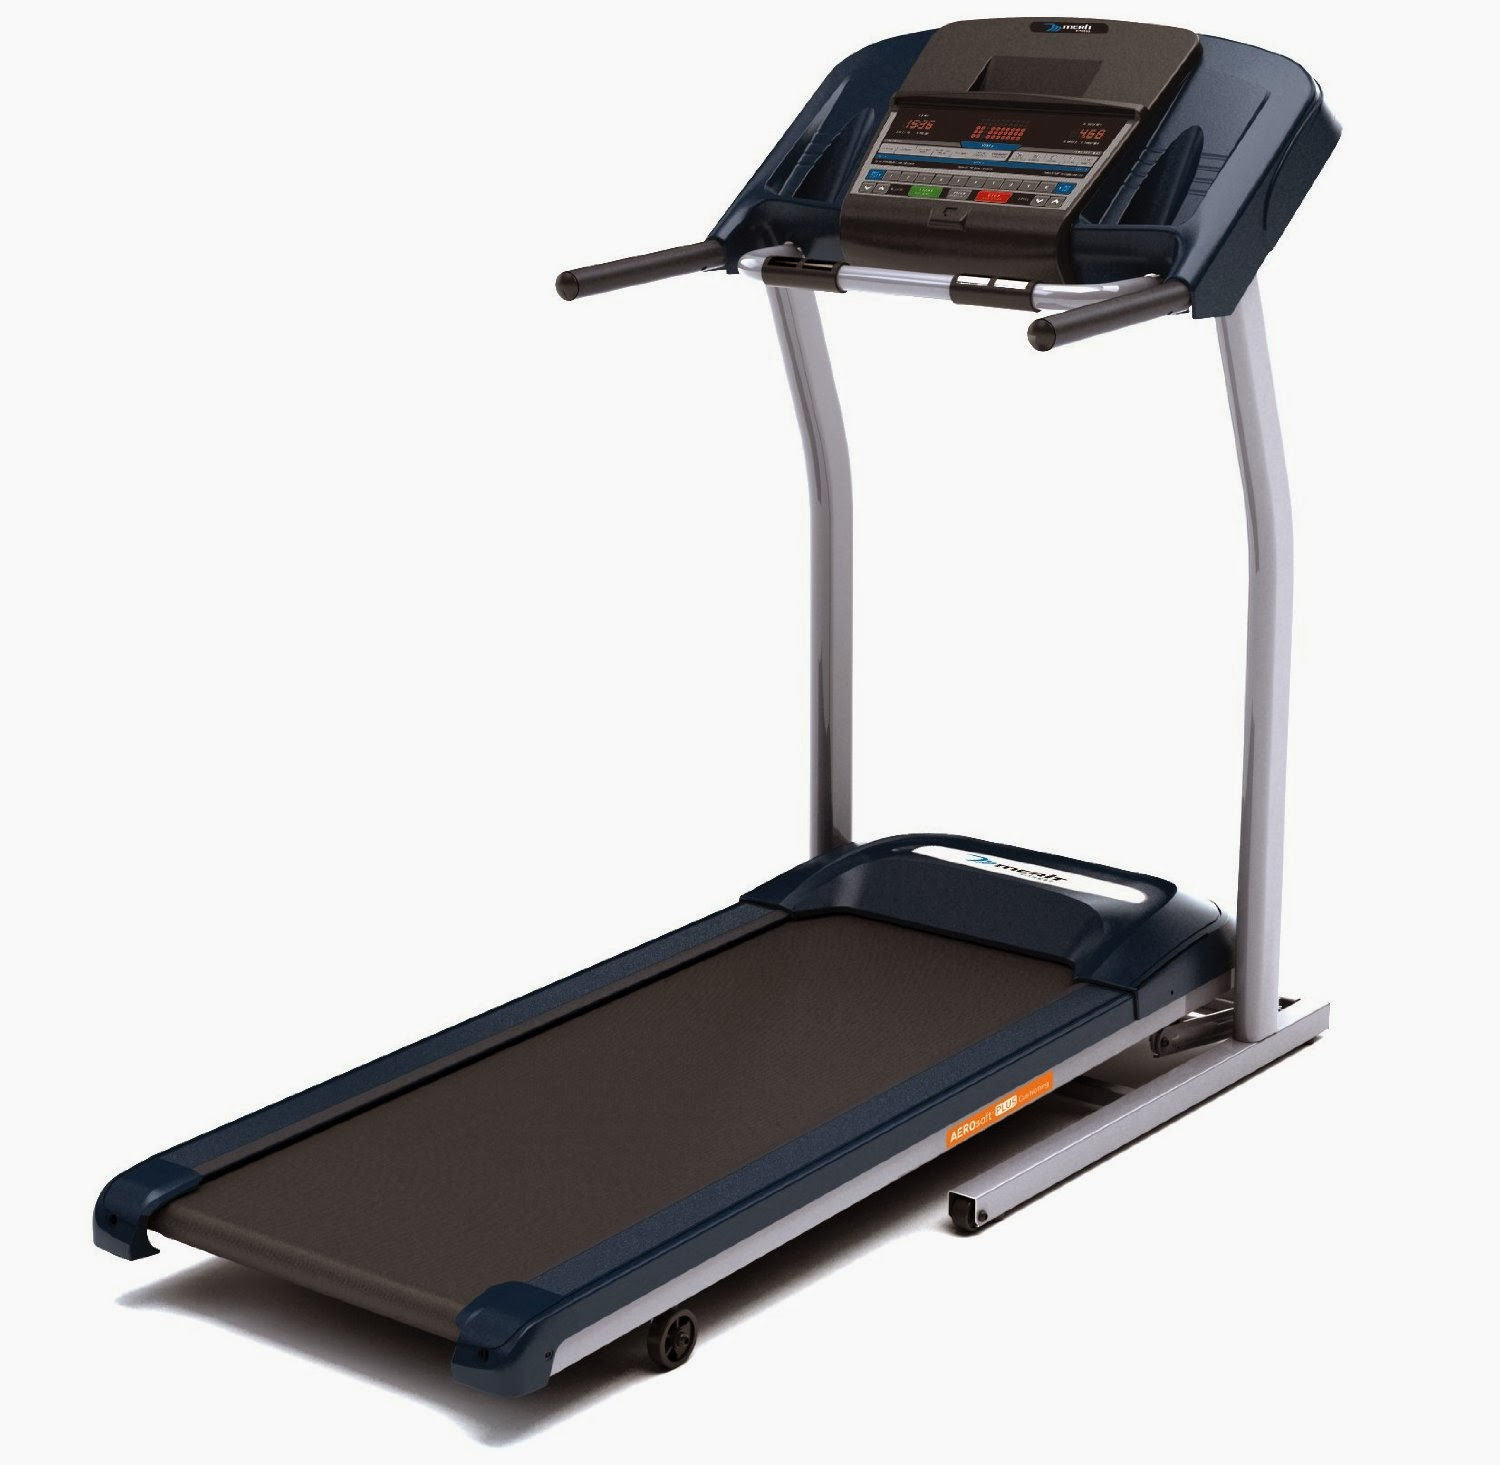 Merit Fitness 725T Plus Treadmill, picture, review features & specifications, compare with Merit Fitness 715T Plus Treadmill